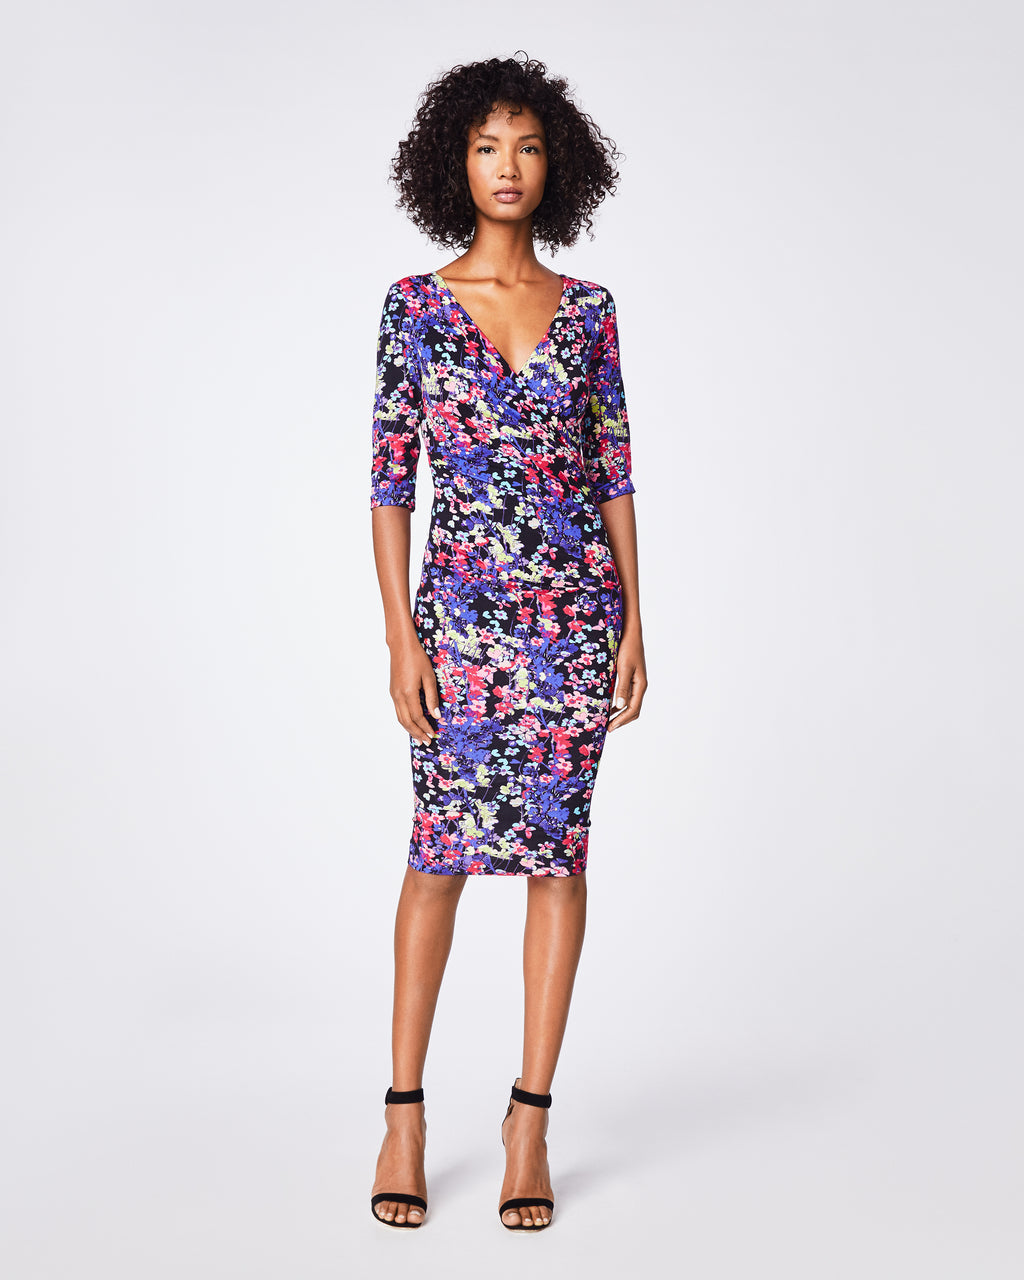 BH10395 - Hanging Flowers Sleeve Tuck Dress - dresses - midi - This skinny wrap dress has tuck details through the hips for a flattering fit. The 3/4-length sleeve and deep v-neck adds a sophisticated look. Finished with a concealed zipper for closure. Knee-length